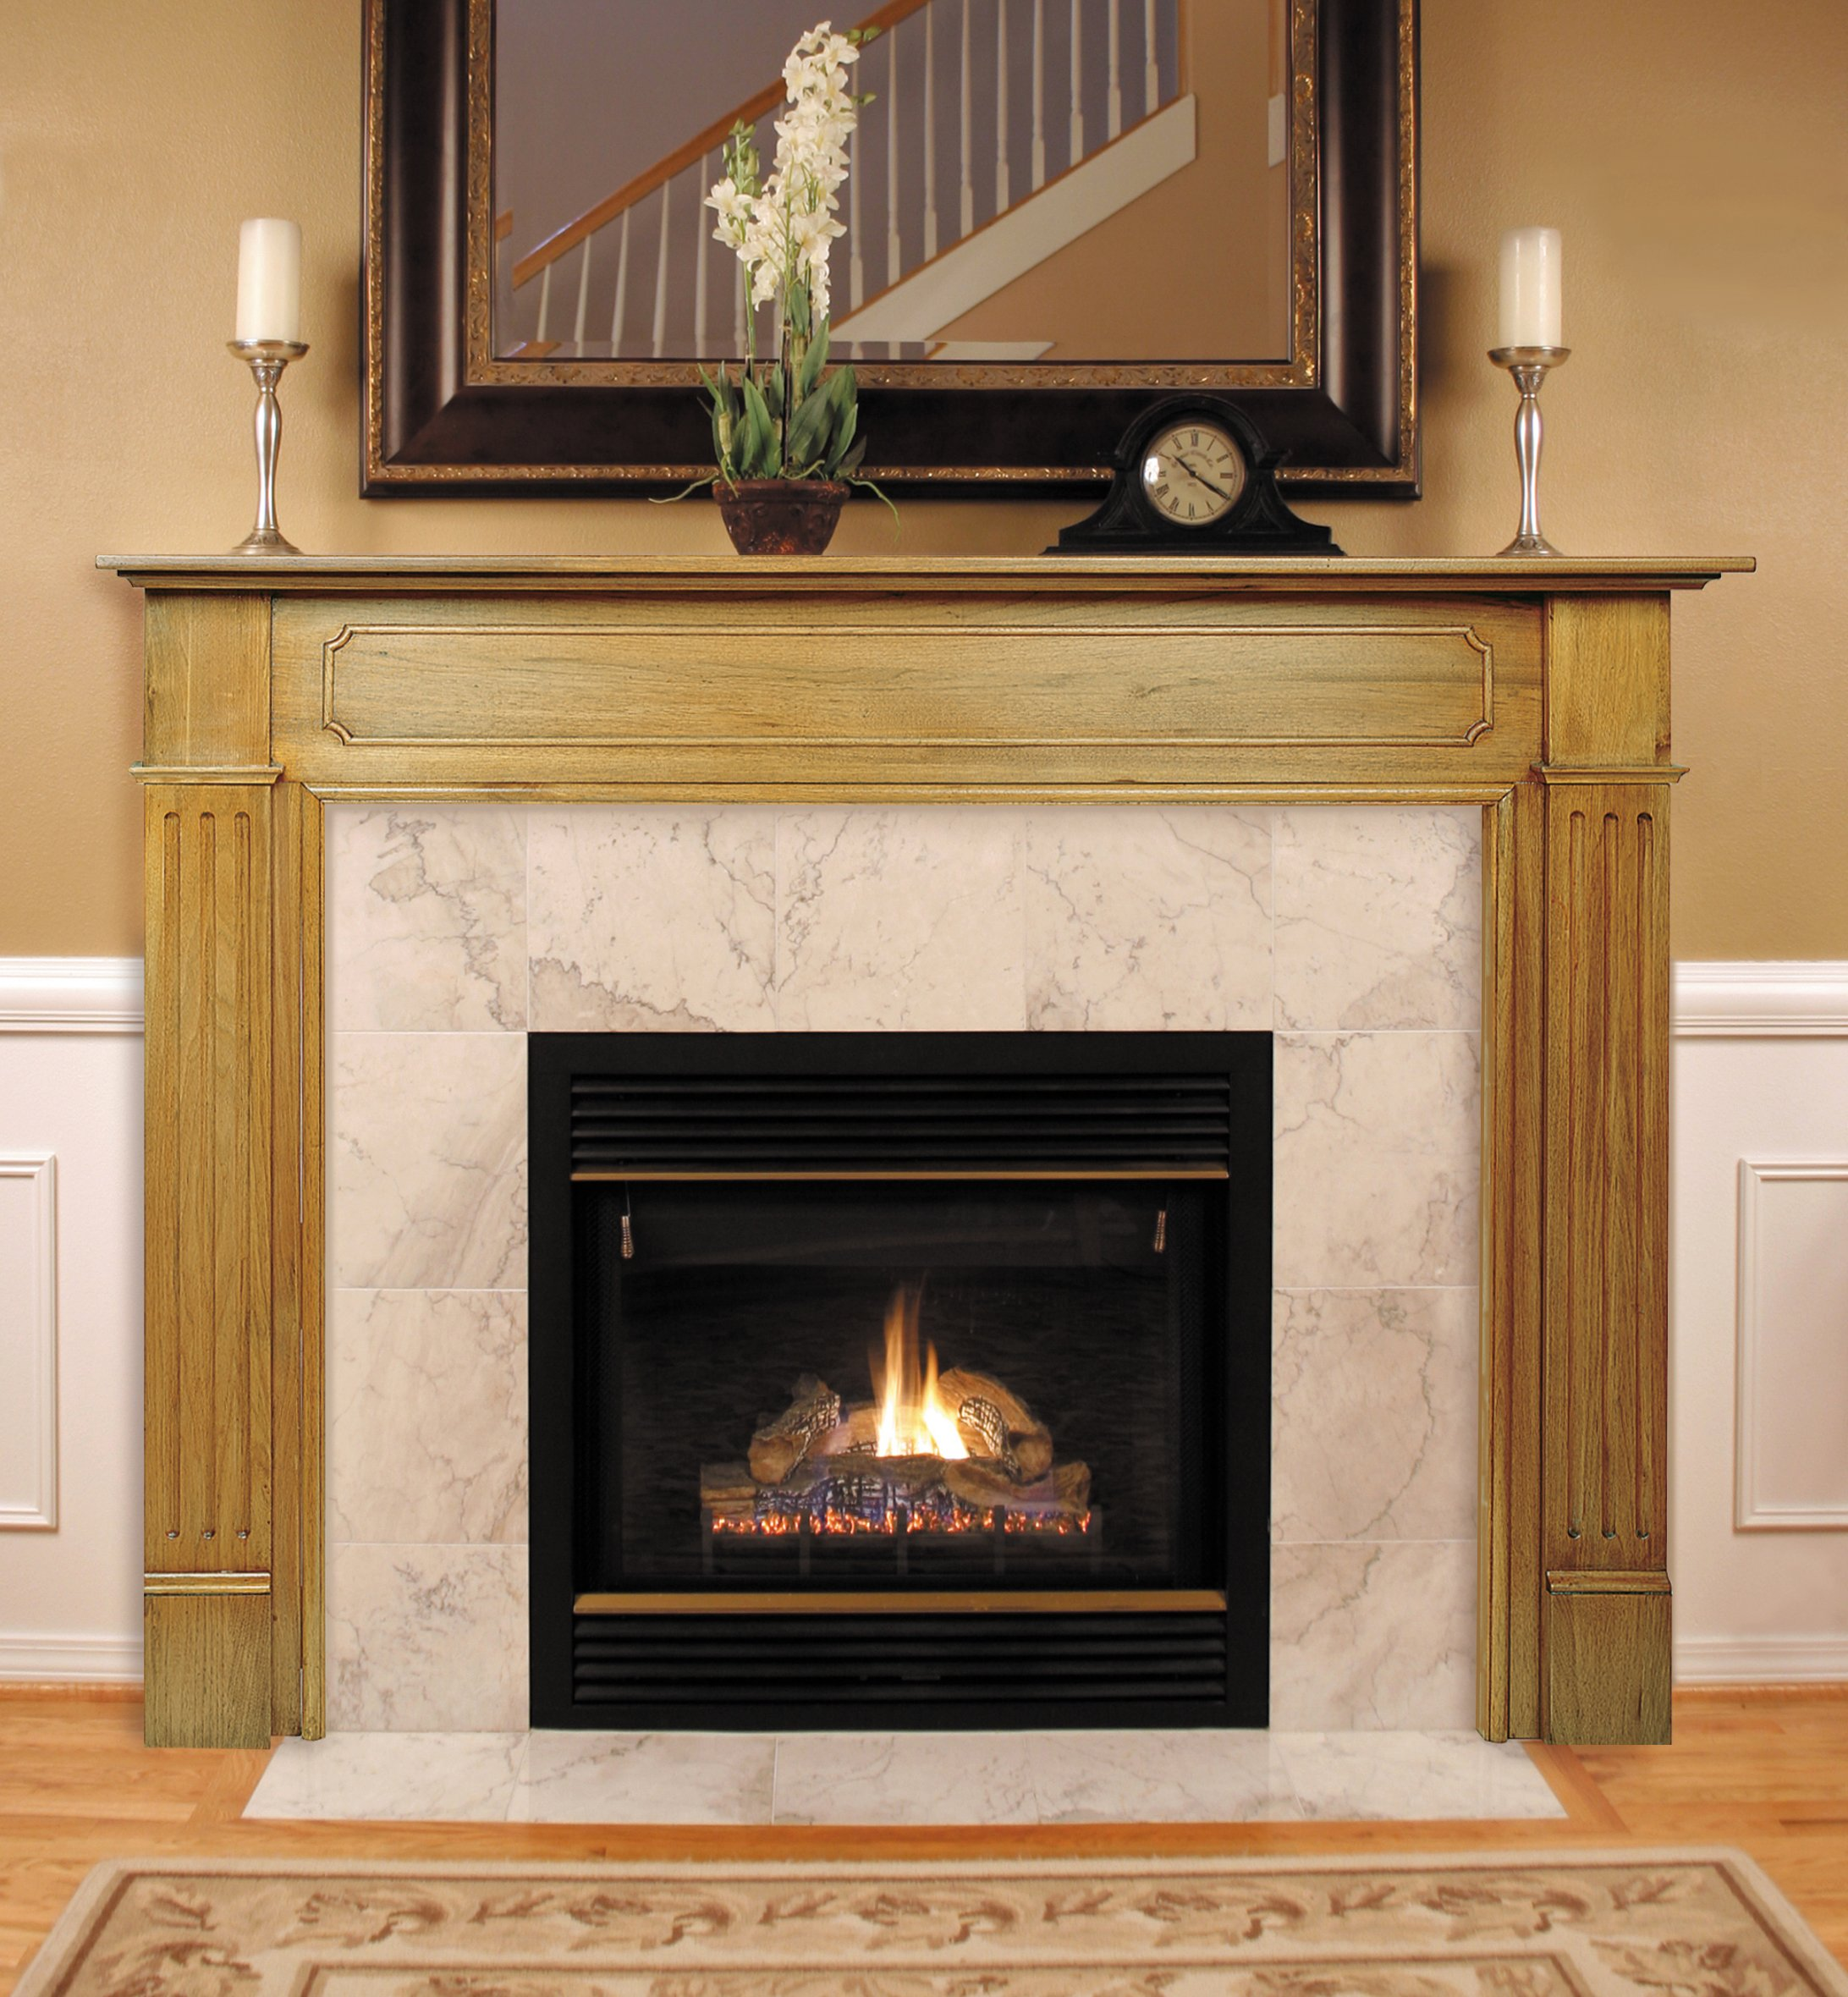 Pearl Mantels 110-56 Williamsburg Fireplace Mantel, 56-Inch, Unfinished by Pearl Mantels